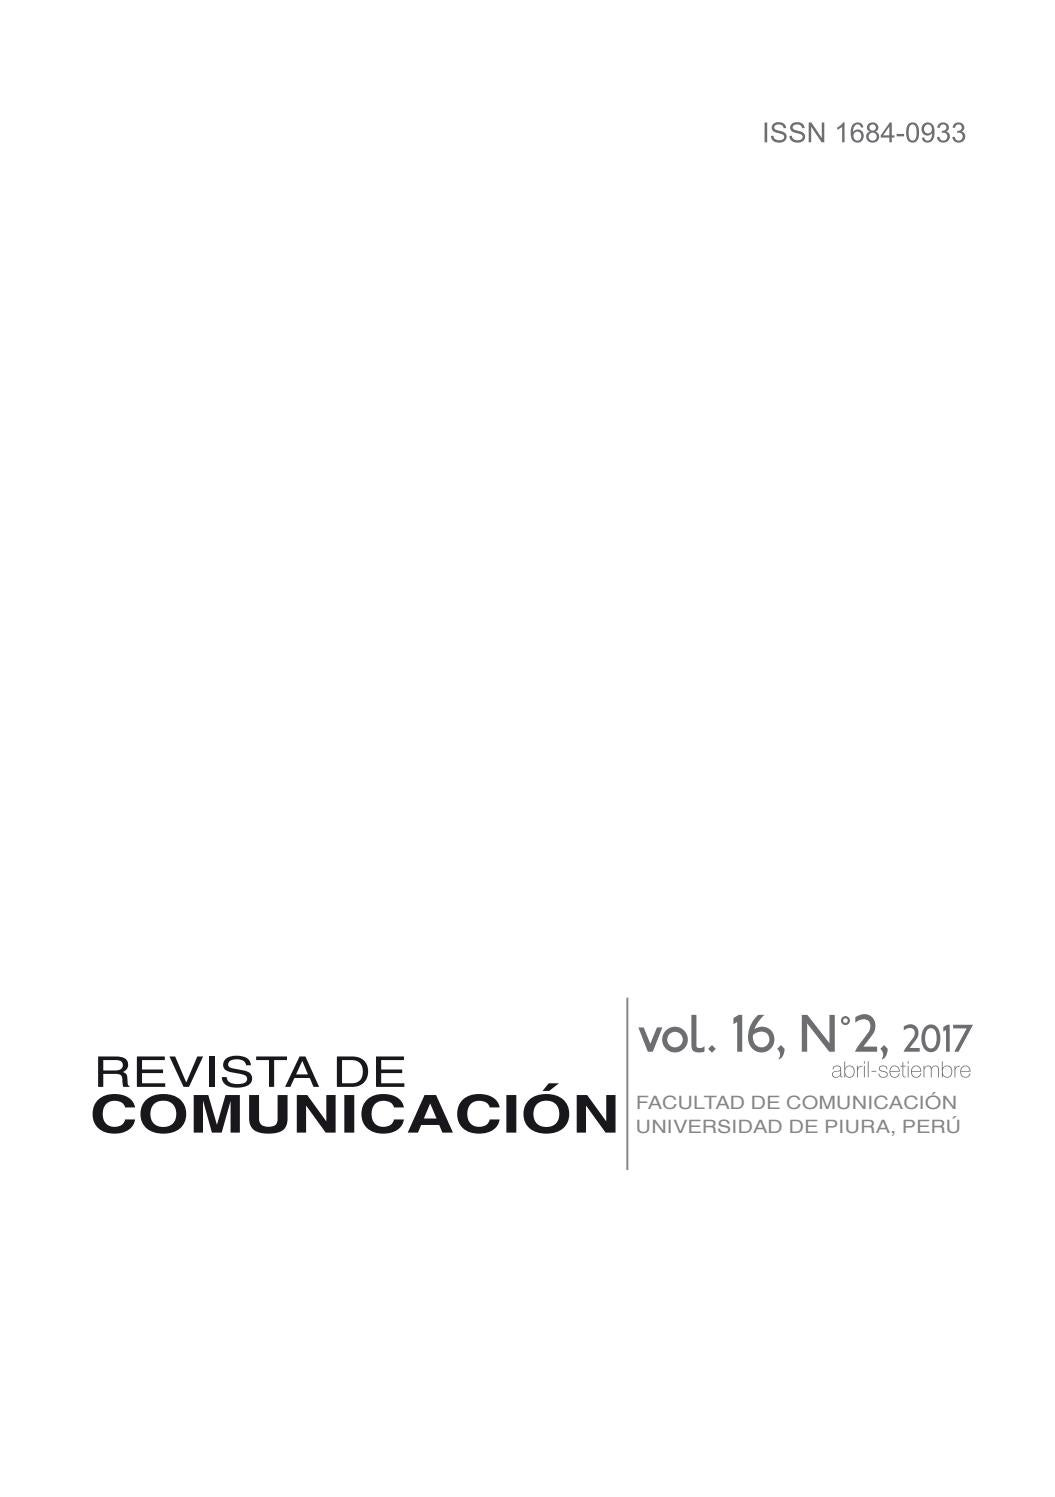 Revista de Comunicación vol. 16, N°2, 2017 by Revista de ...